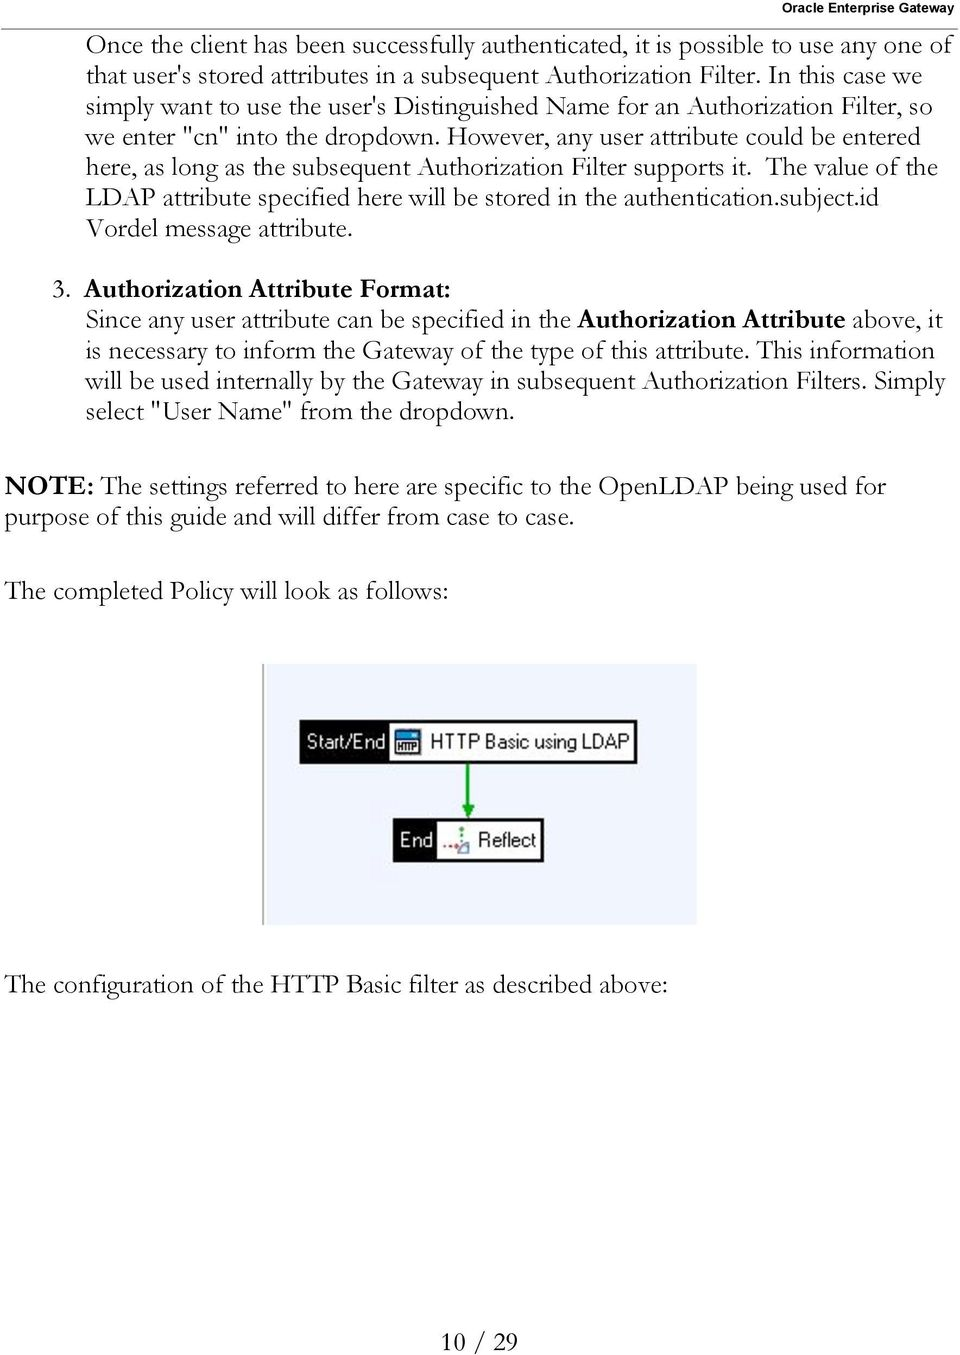 However, any user attribute could be entered here, as long as the subsequent Authorization Filter supports it. The value of the LDAP attribute specified here will be stored in the authentication.